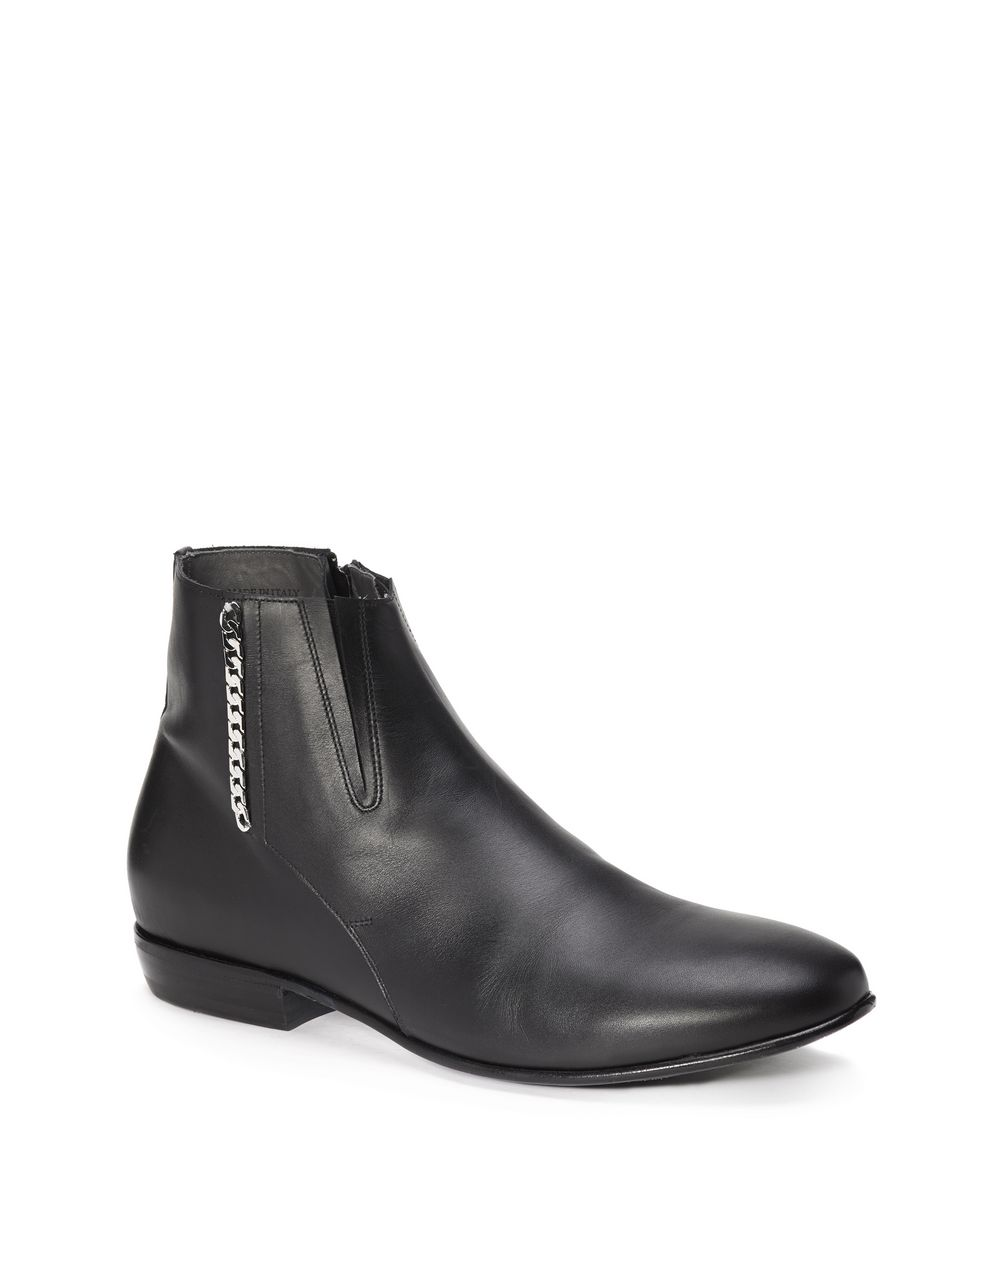 03f9f663cc9 Smooth calfskin chain low boot shoe - Lanvin ...